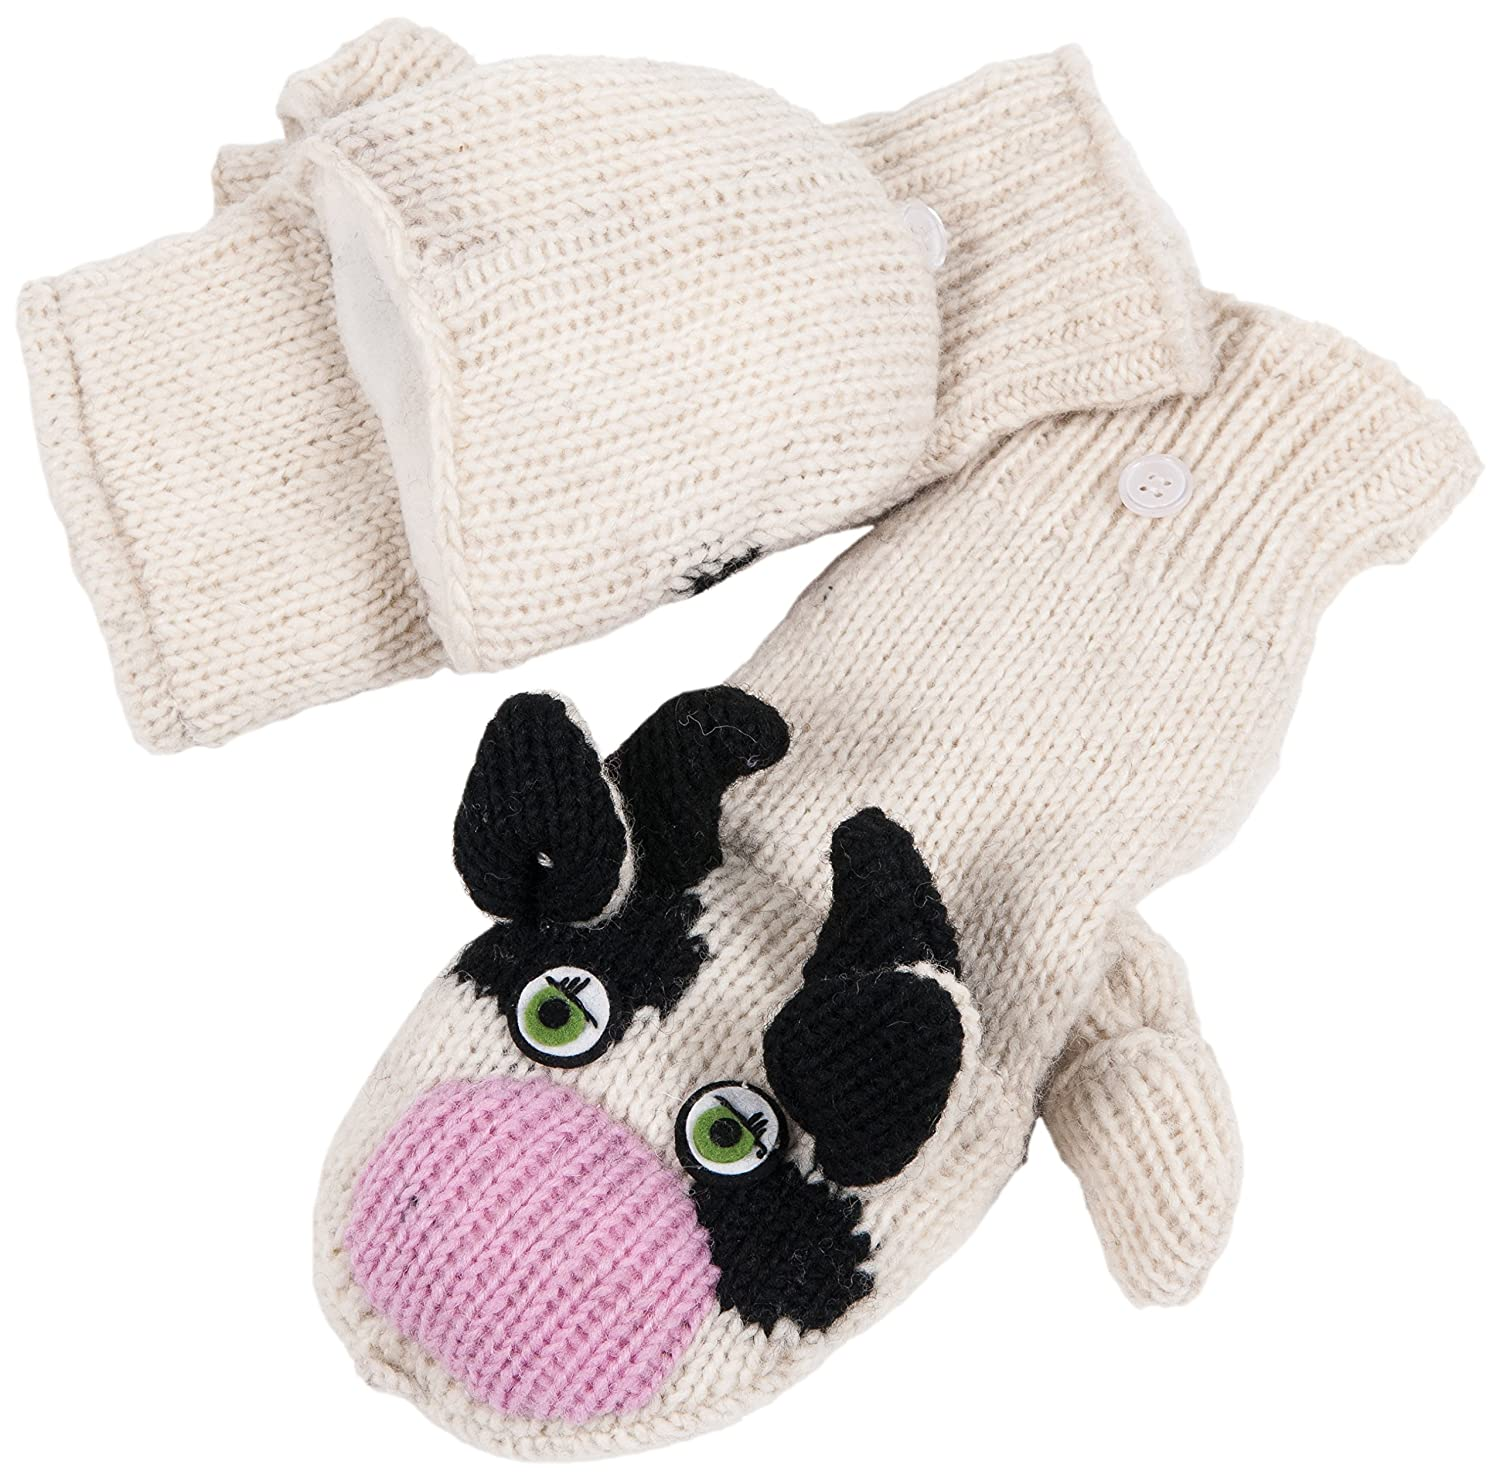 Nirvanna Designs MTCOWC Cow Cover Mittens, White, Adult Nirvanna Designs Inc